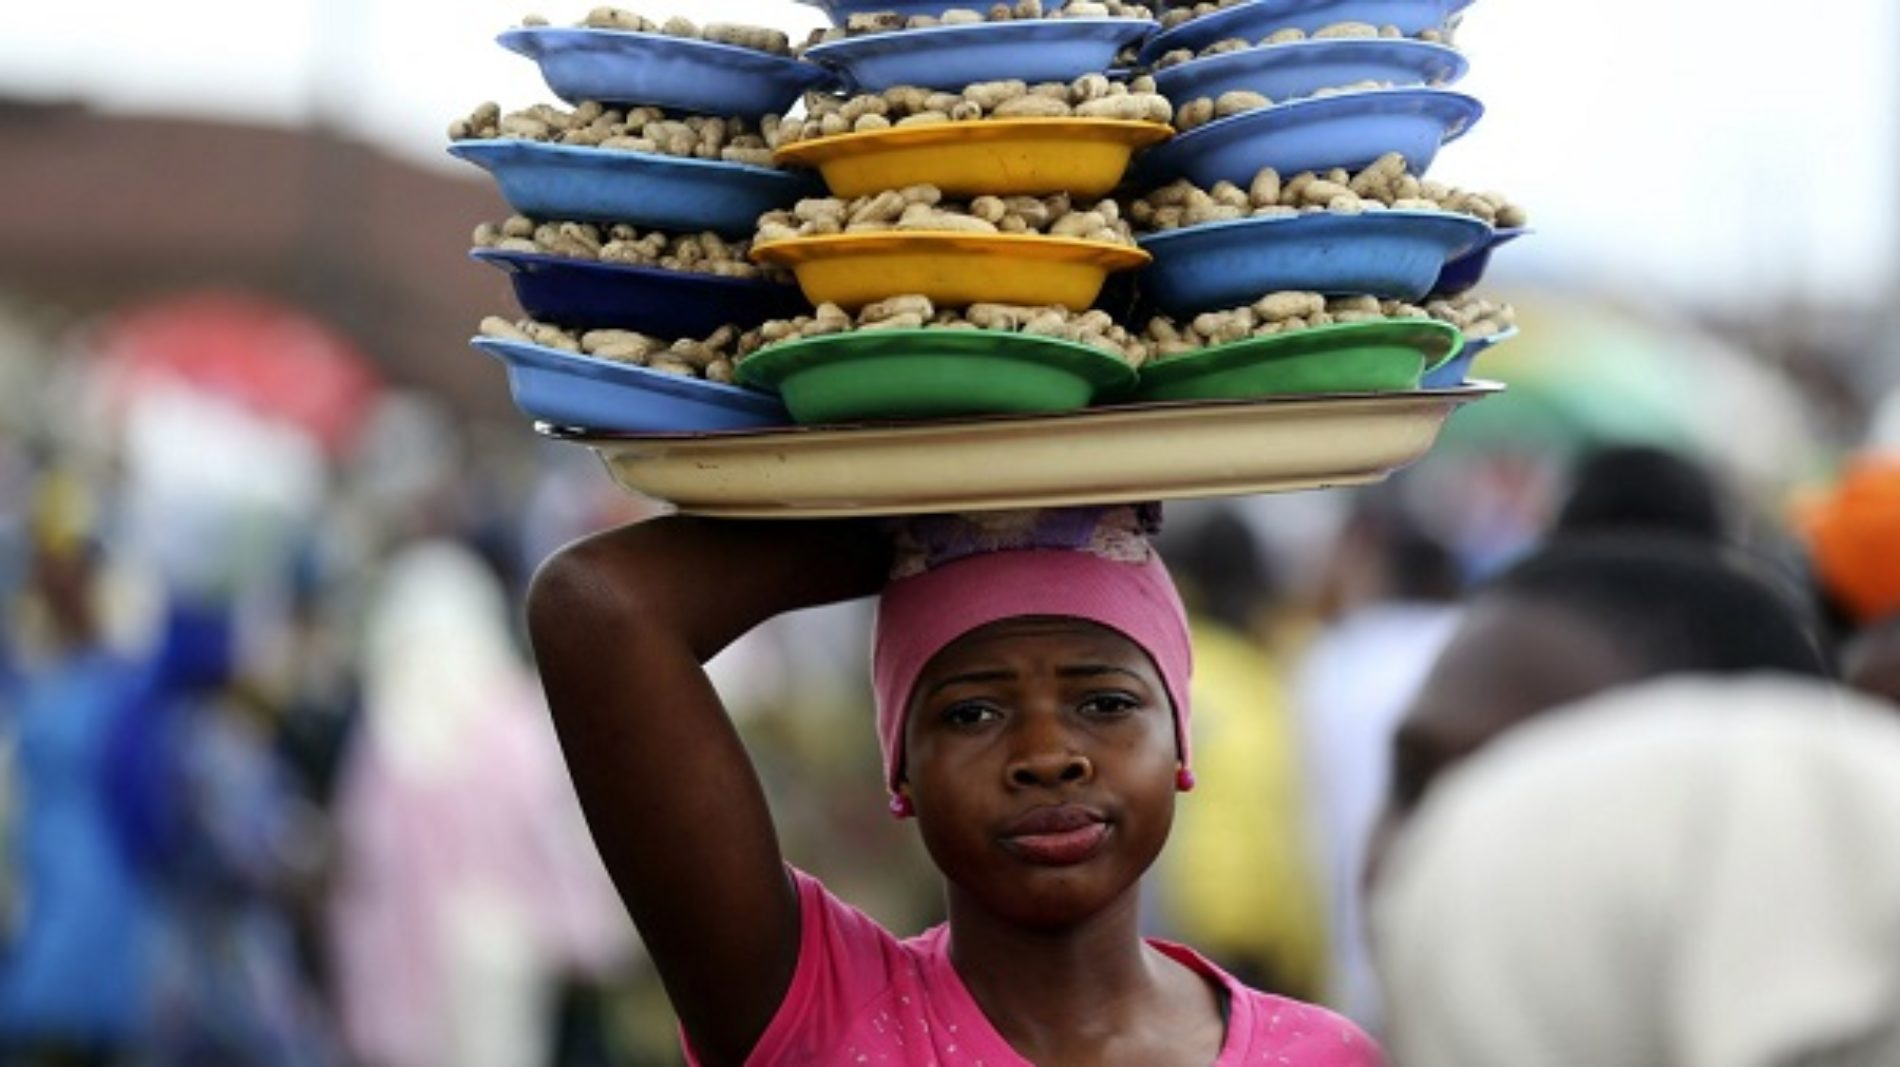 Nigerian Senate votes down bill on gender equality citing the Bible and Sharia law